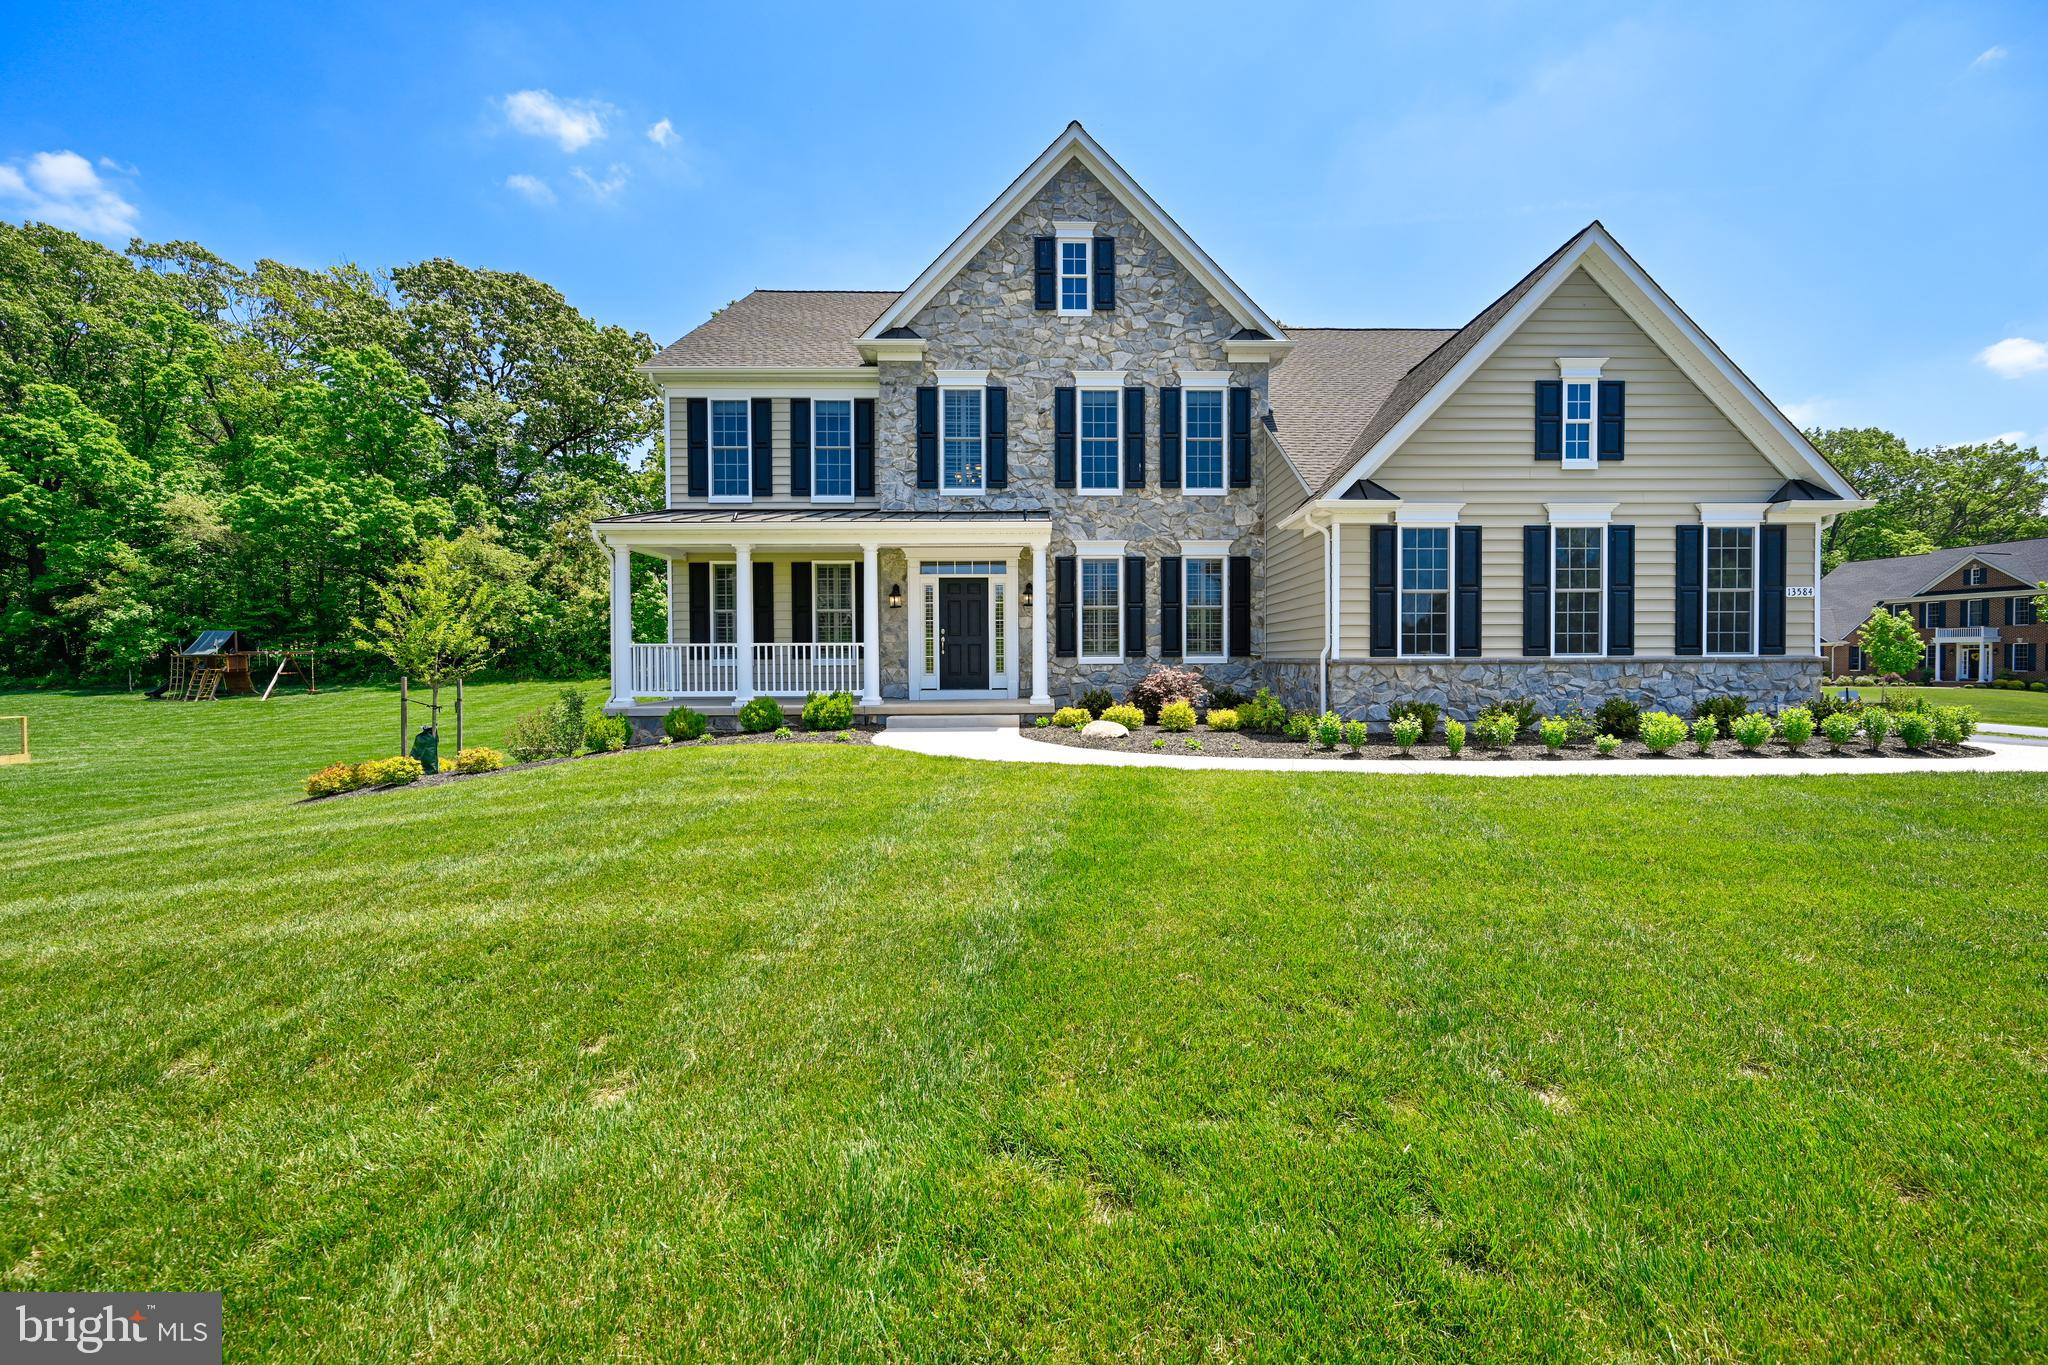 Fabulous 5 bedroom, 4.5 bath colonial in prestigious  Estates at Cloverfield!  This nearly new home